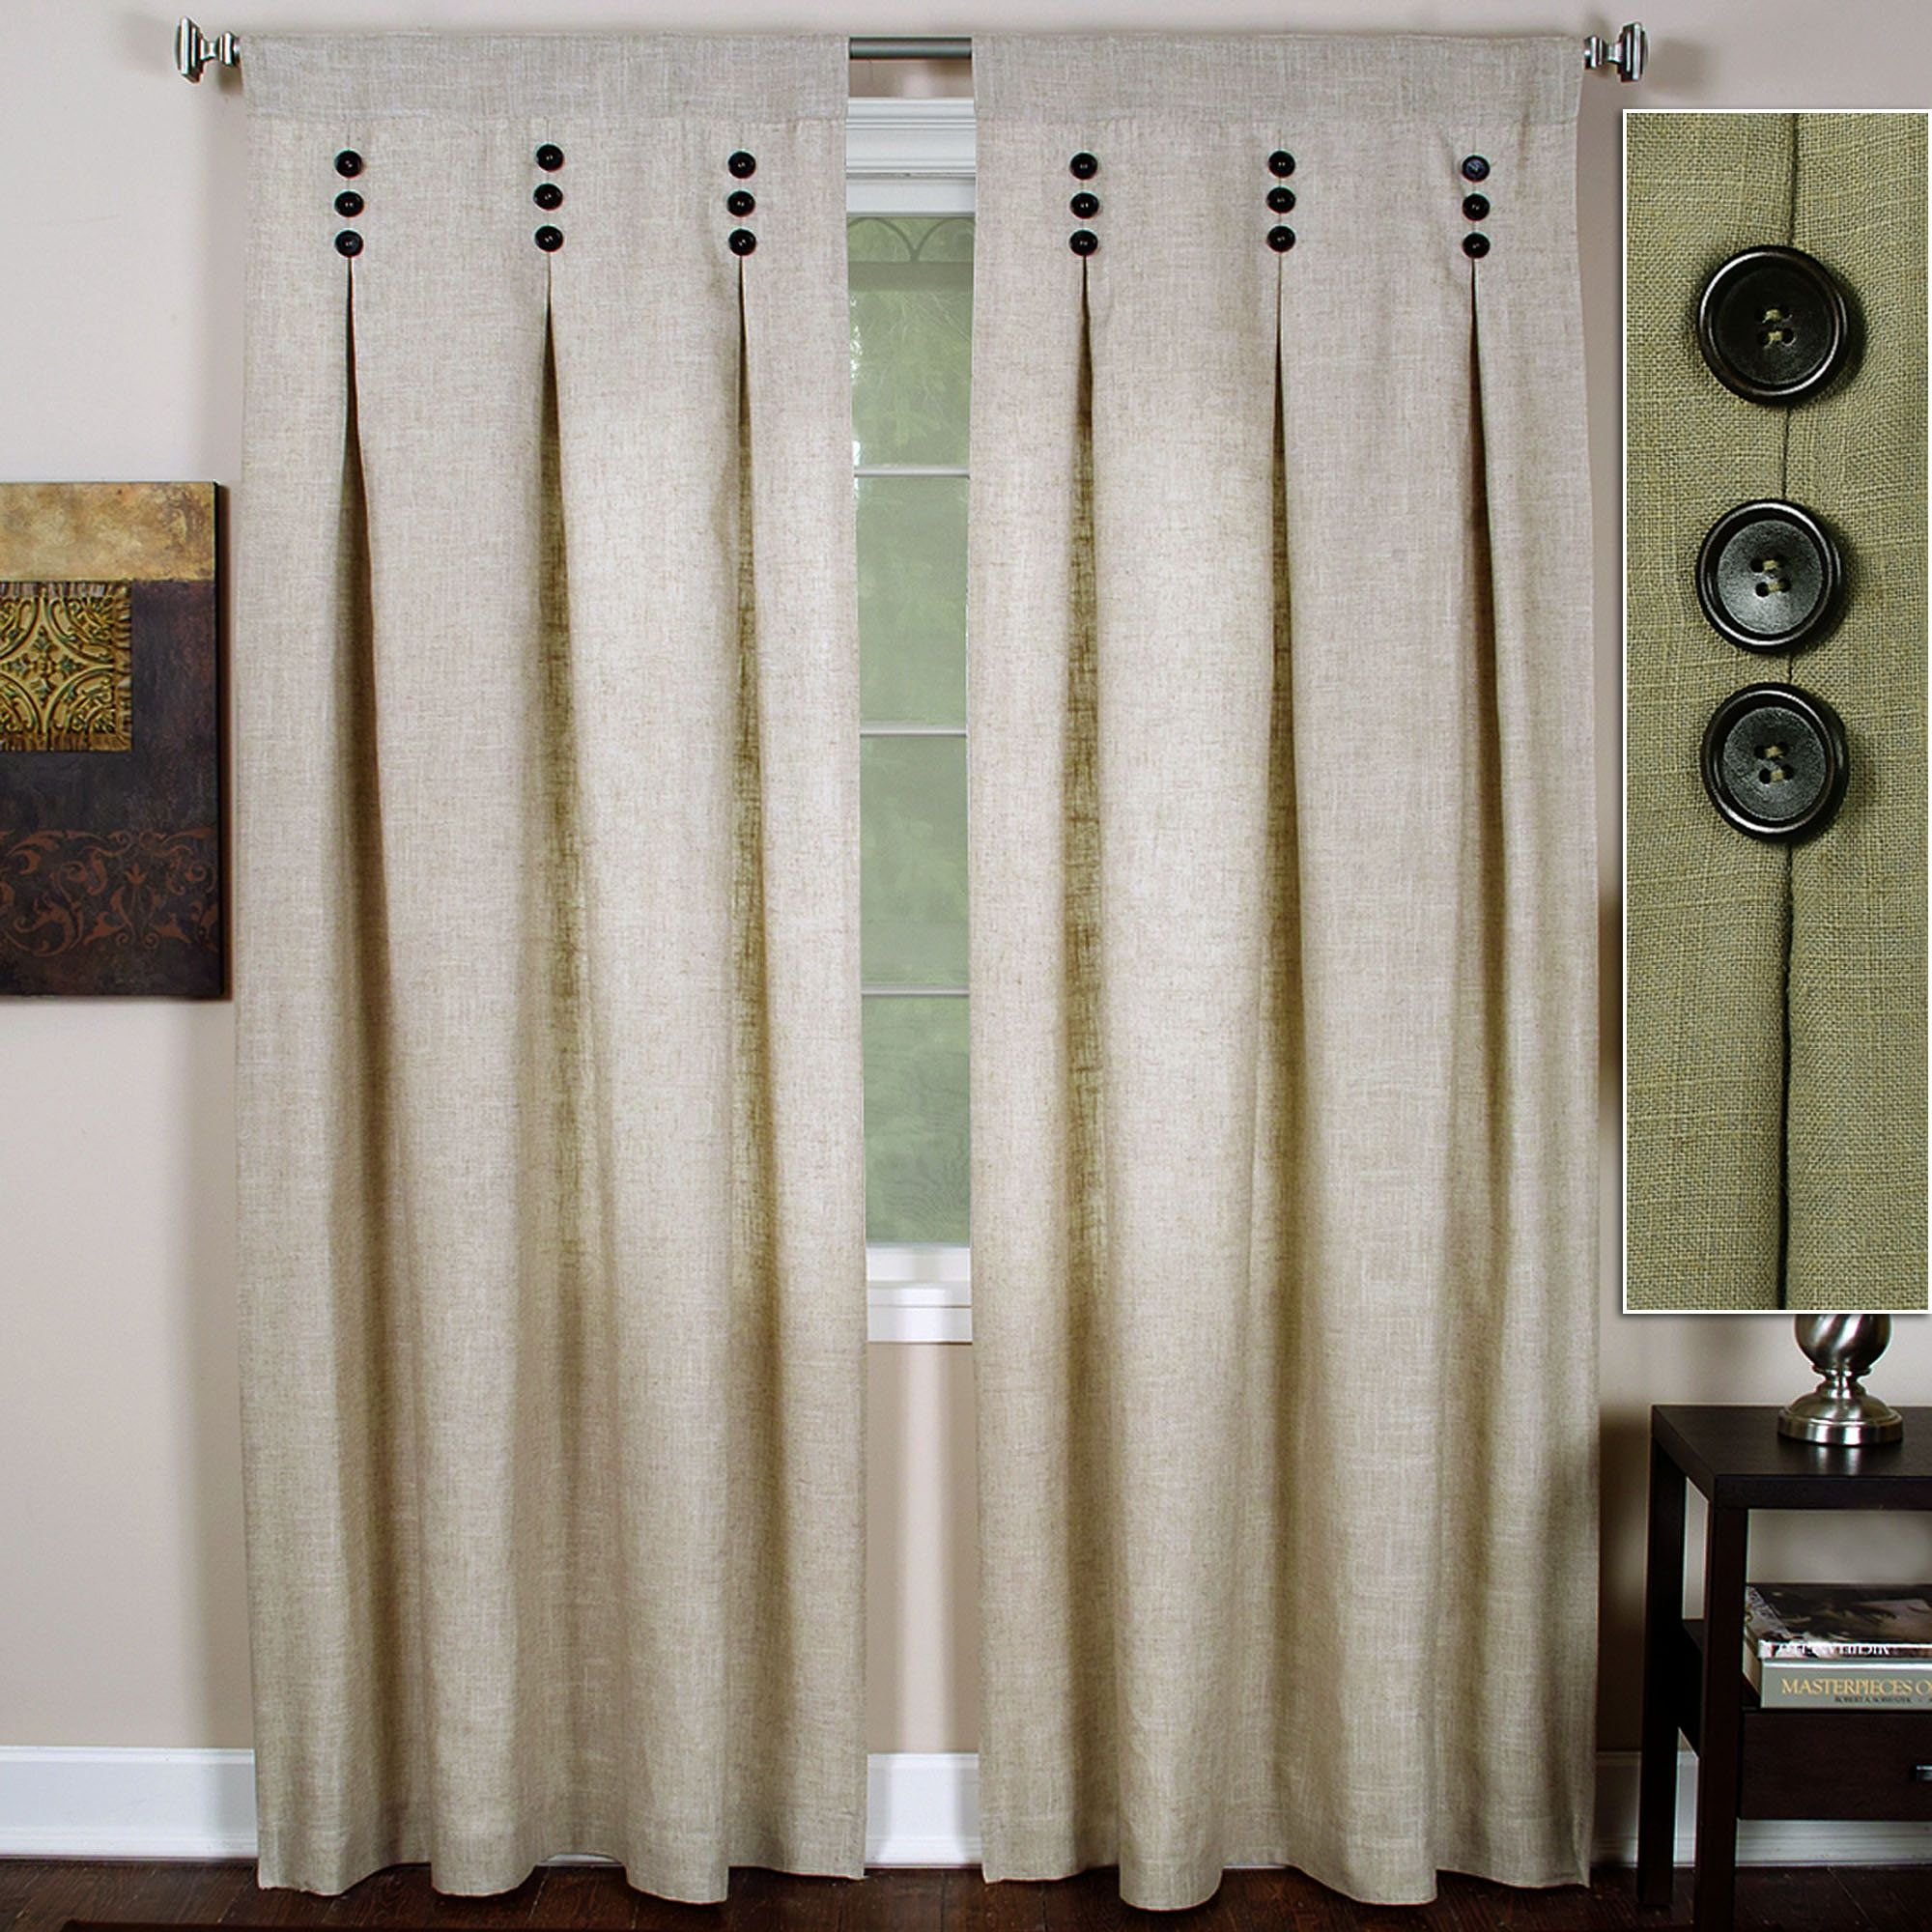 drapes  modern curtains and drapes – inverted pleat curtains  - drapes  modern curtains and drapes – inverted pleat curtains design